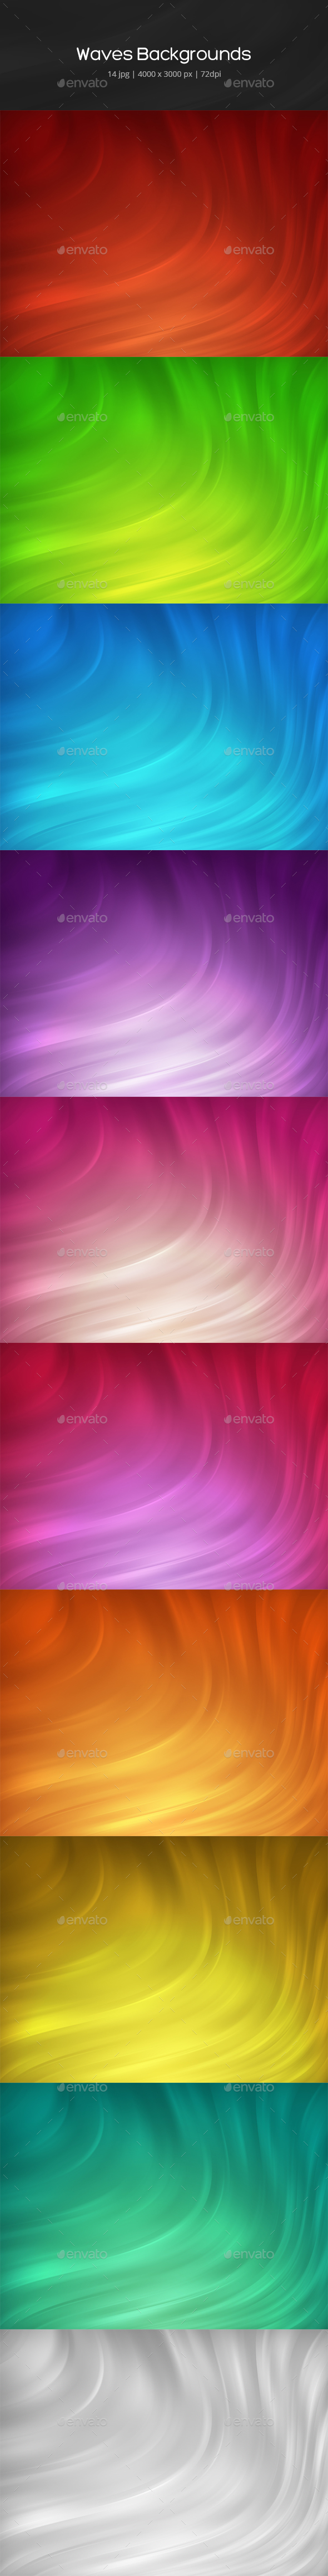 Abstract Waves Backgrounds - Abstract Backgrounds